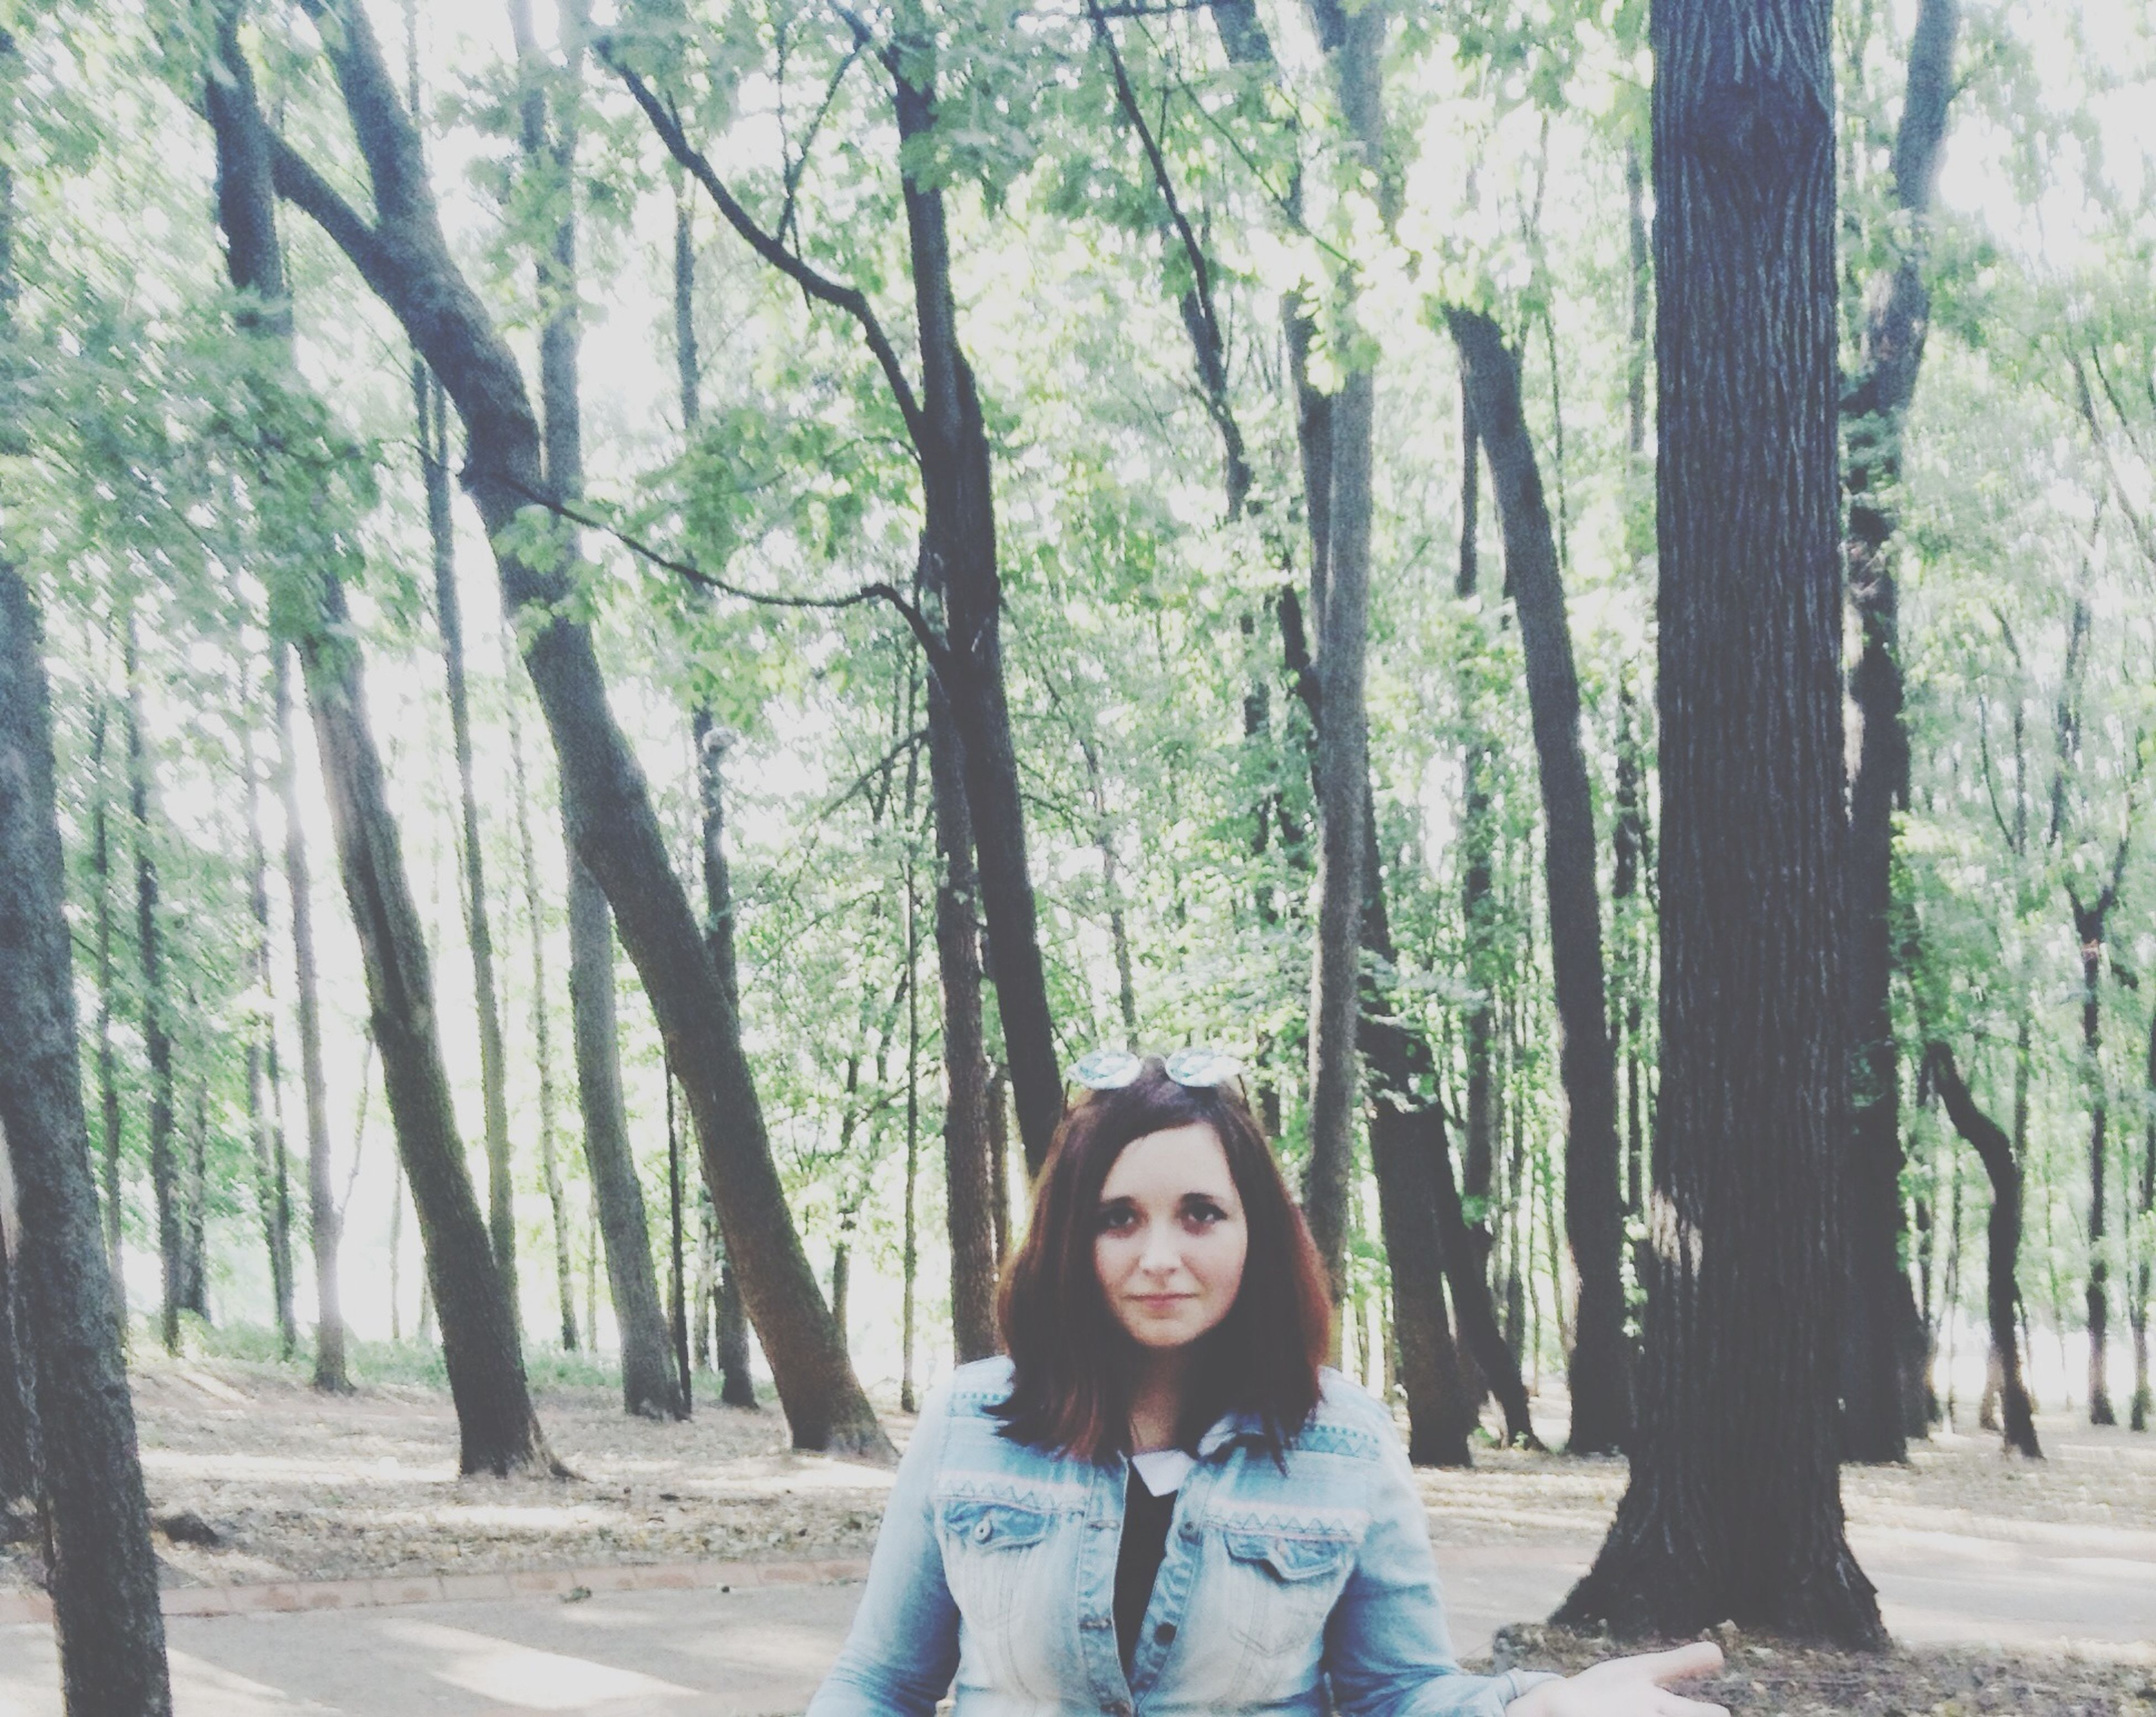 tree, lifestyles, person, leisure activity, casual clothing, young adult, looking at camera, portrait, front view, smiling, young women, happiness, tree trunk, forest, headshot, standing, day